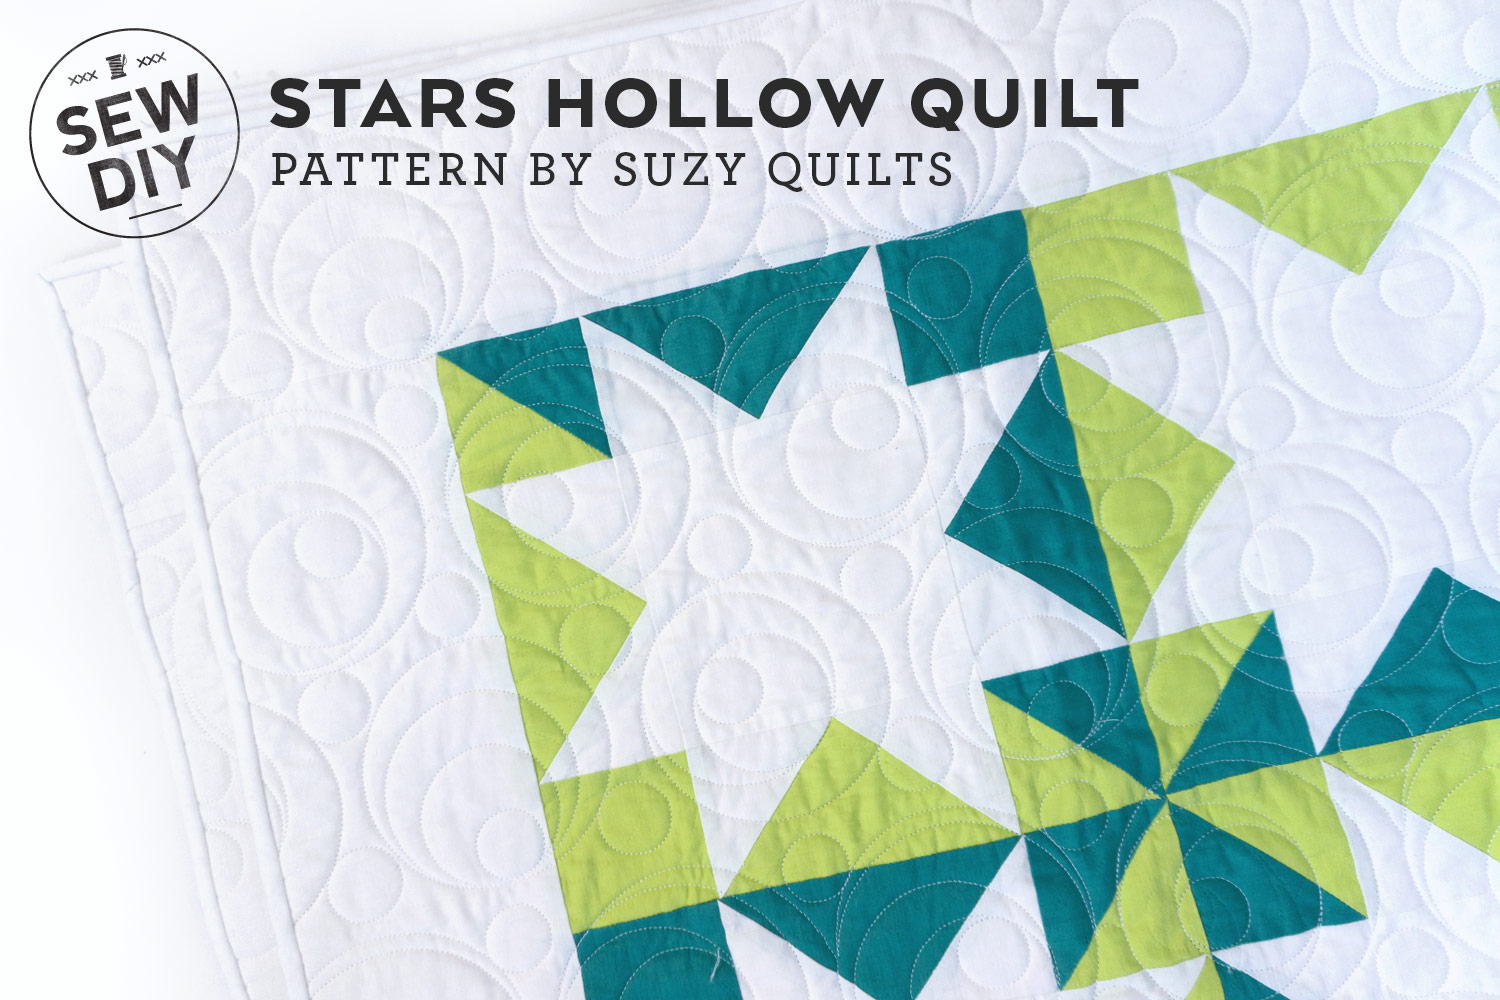 Stars Hollow Quilt – Pattern by Suzy Quilts   Sew DIY